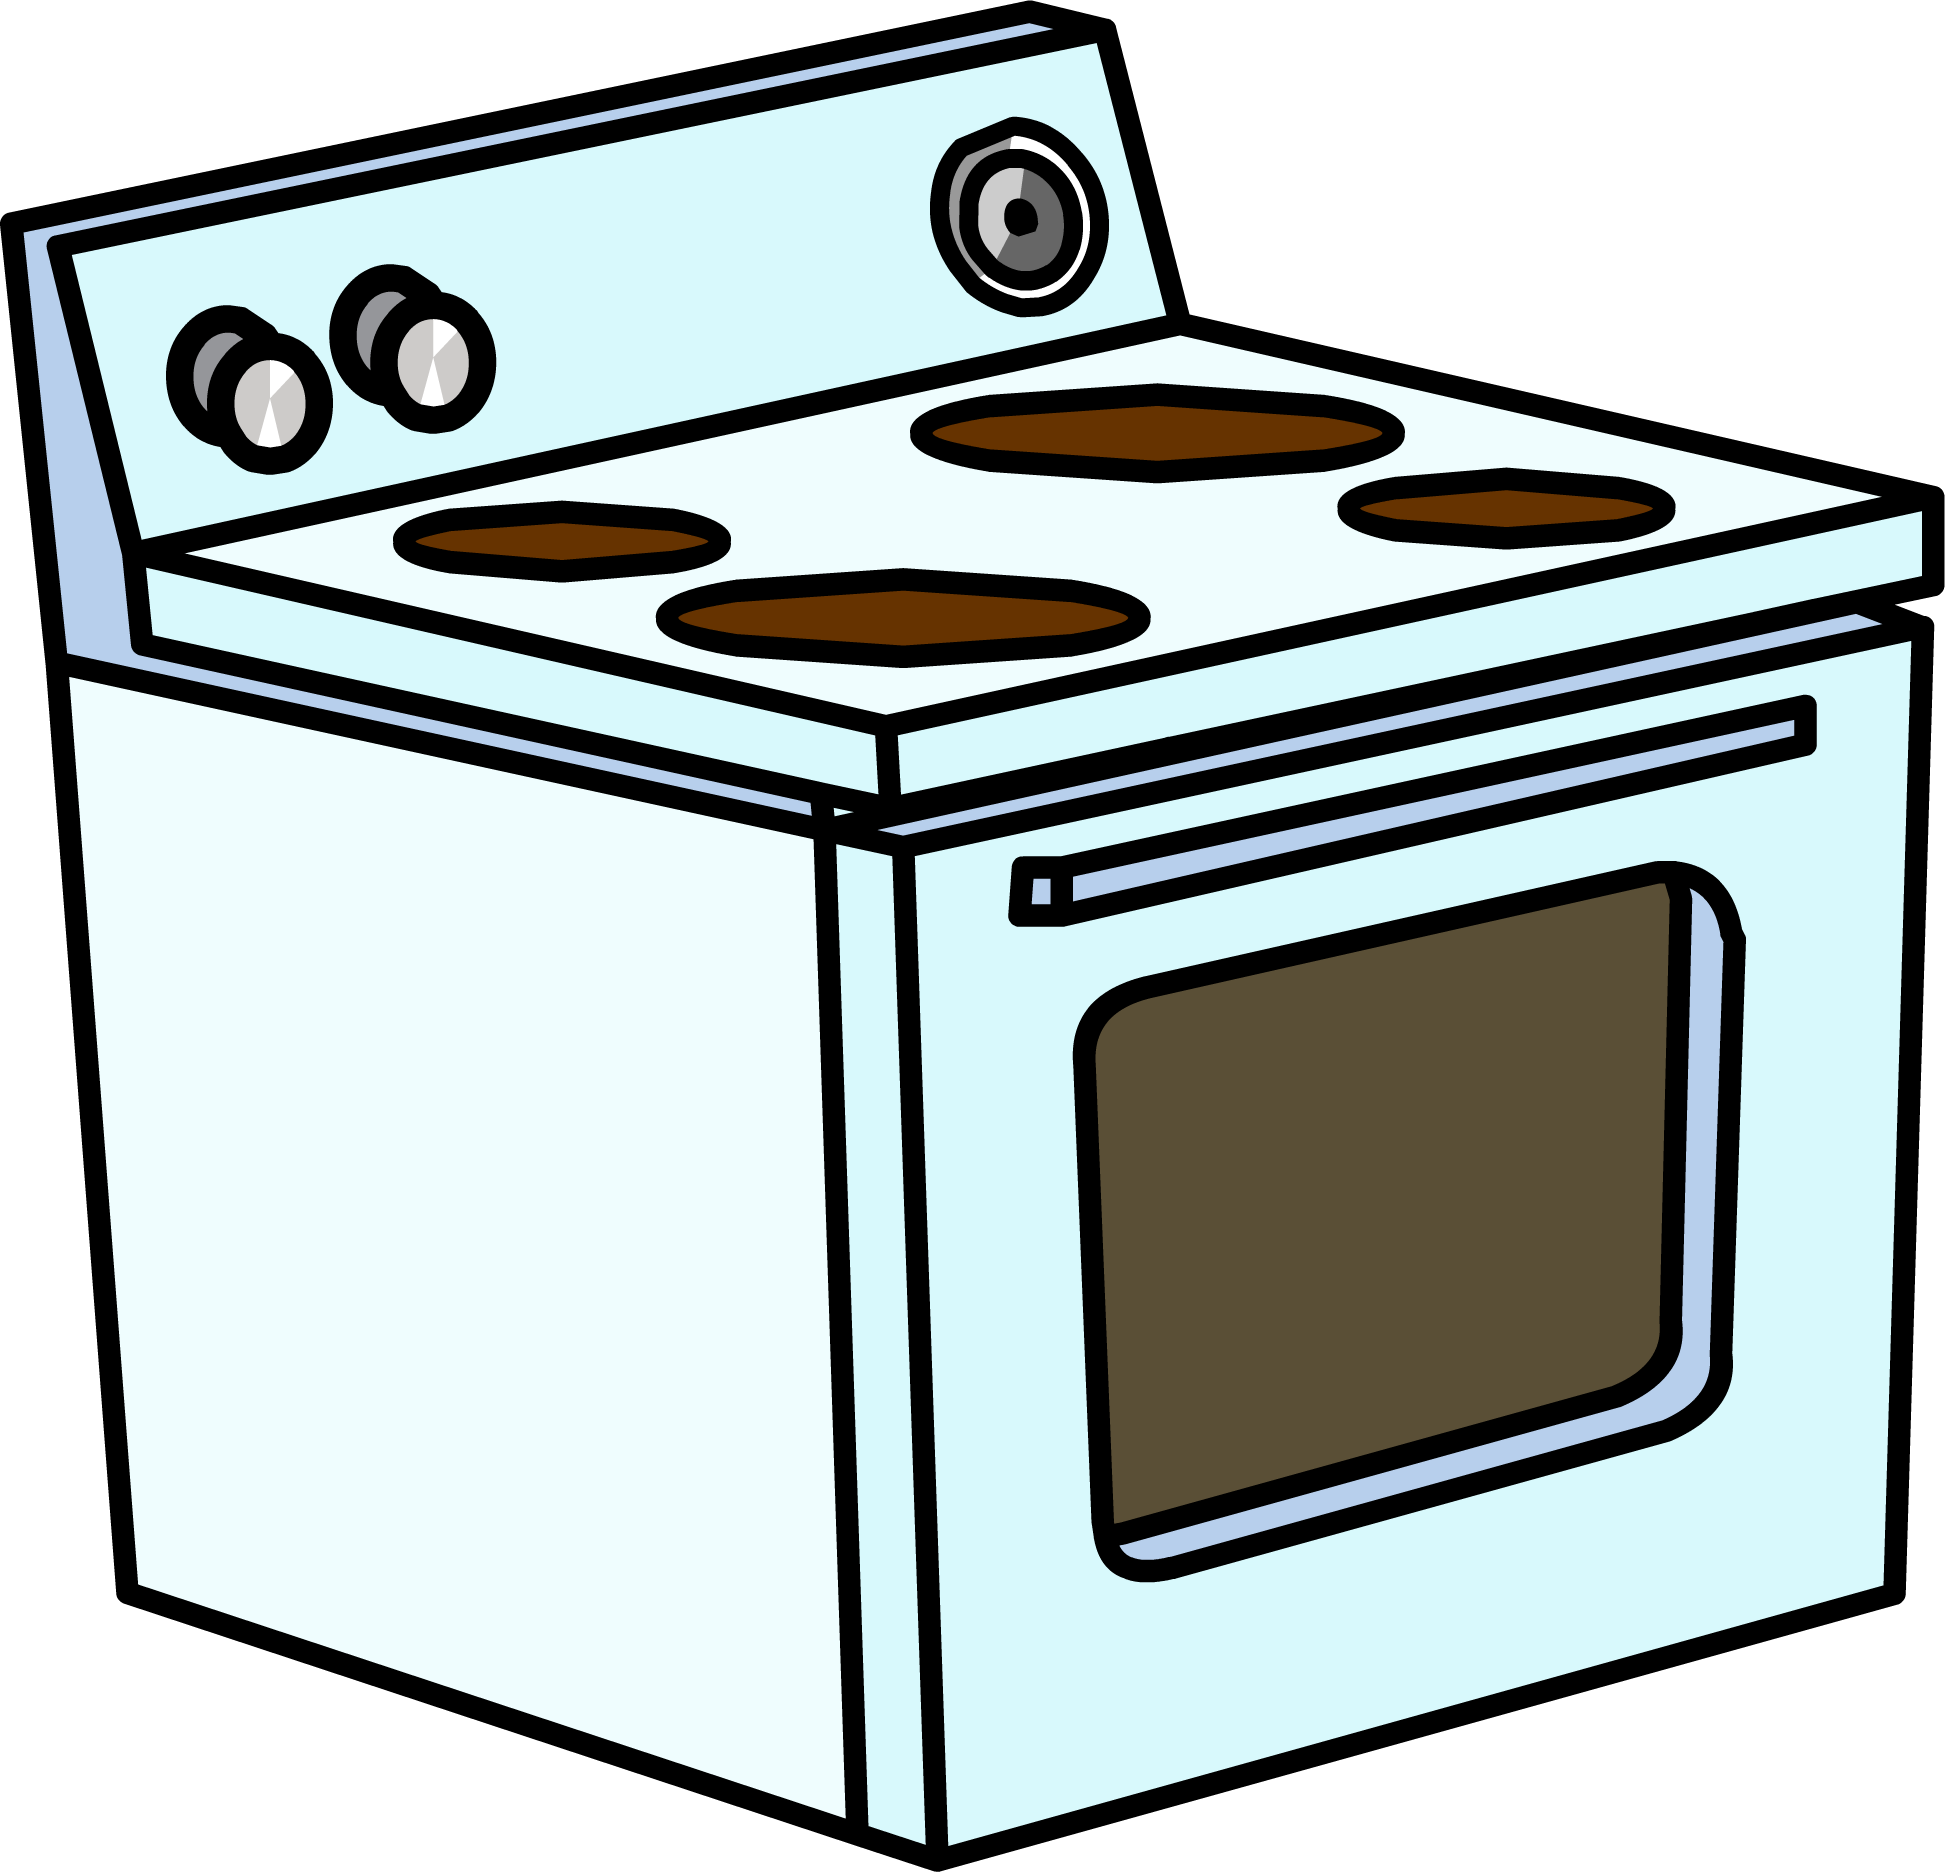 image electric stove sprite 028 png club penguin wiki fandom rh clubpenguin wikia com stove black and white clipart wood stove clipart